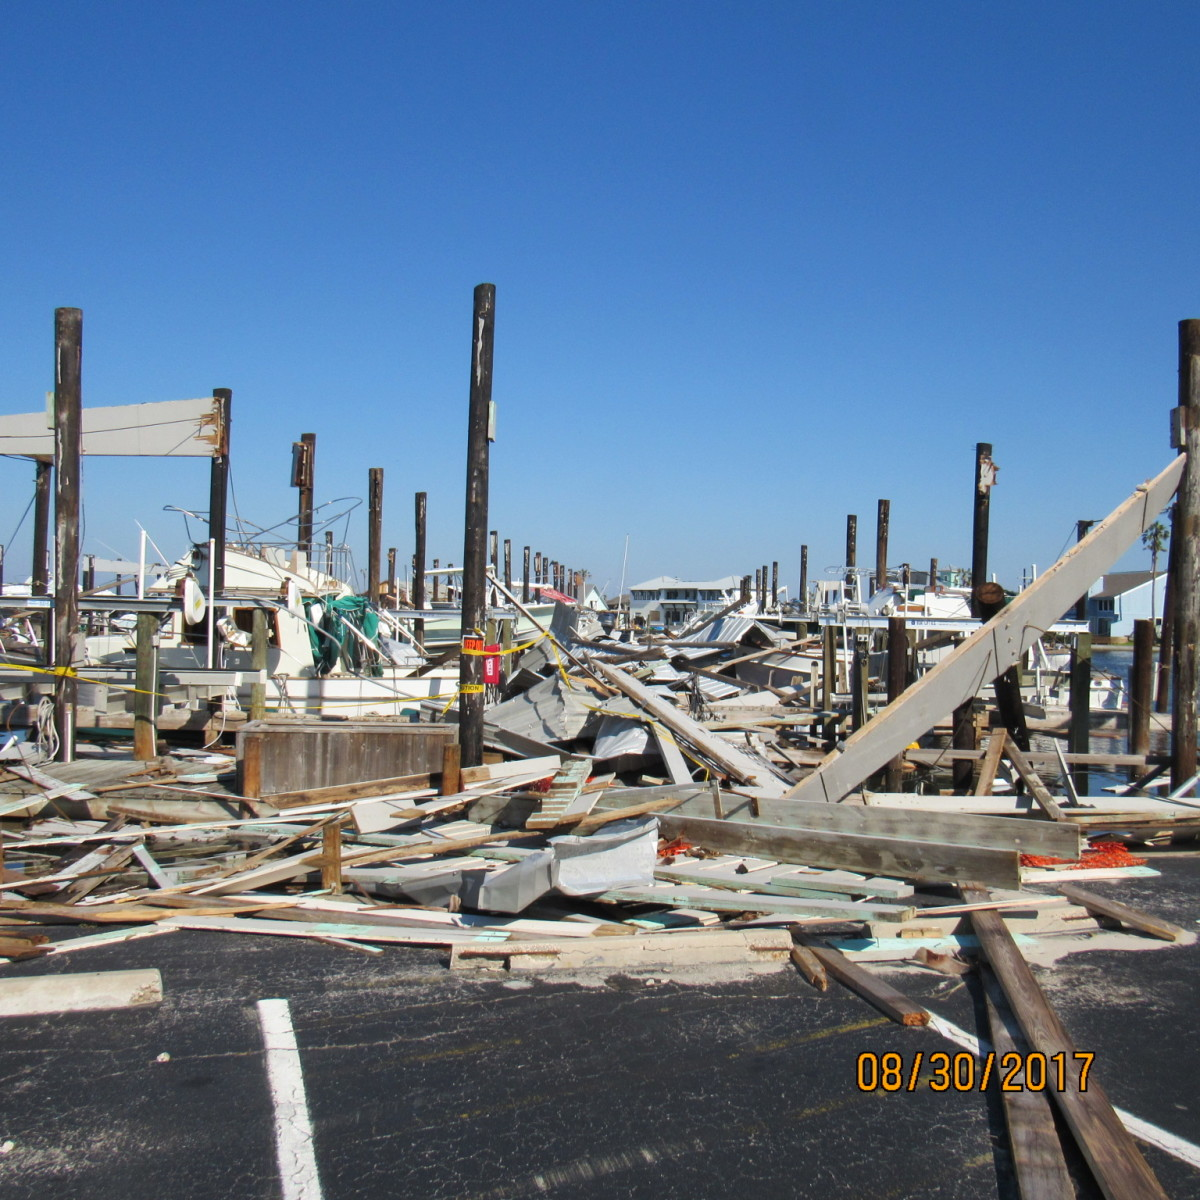 damage to boats and structures at Key Allegro Marina in Rockport, Texas